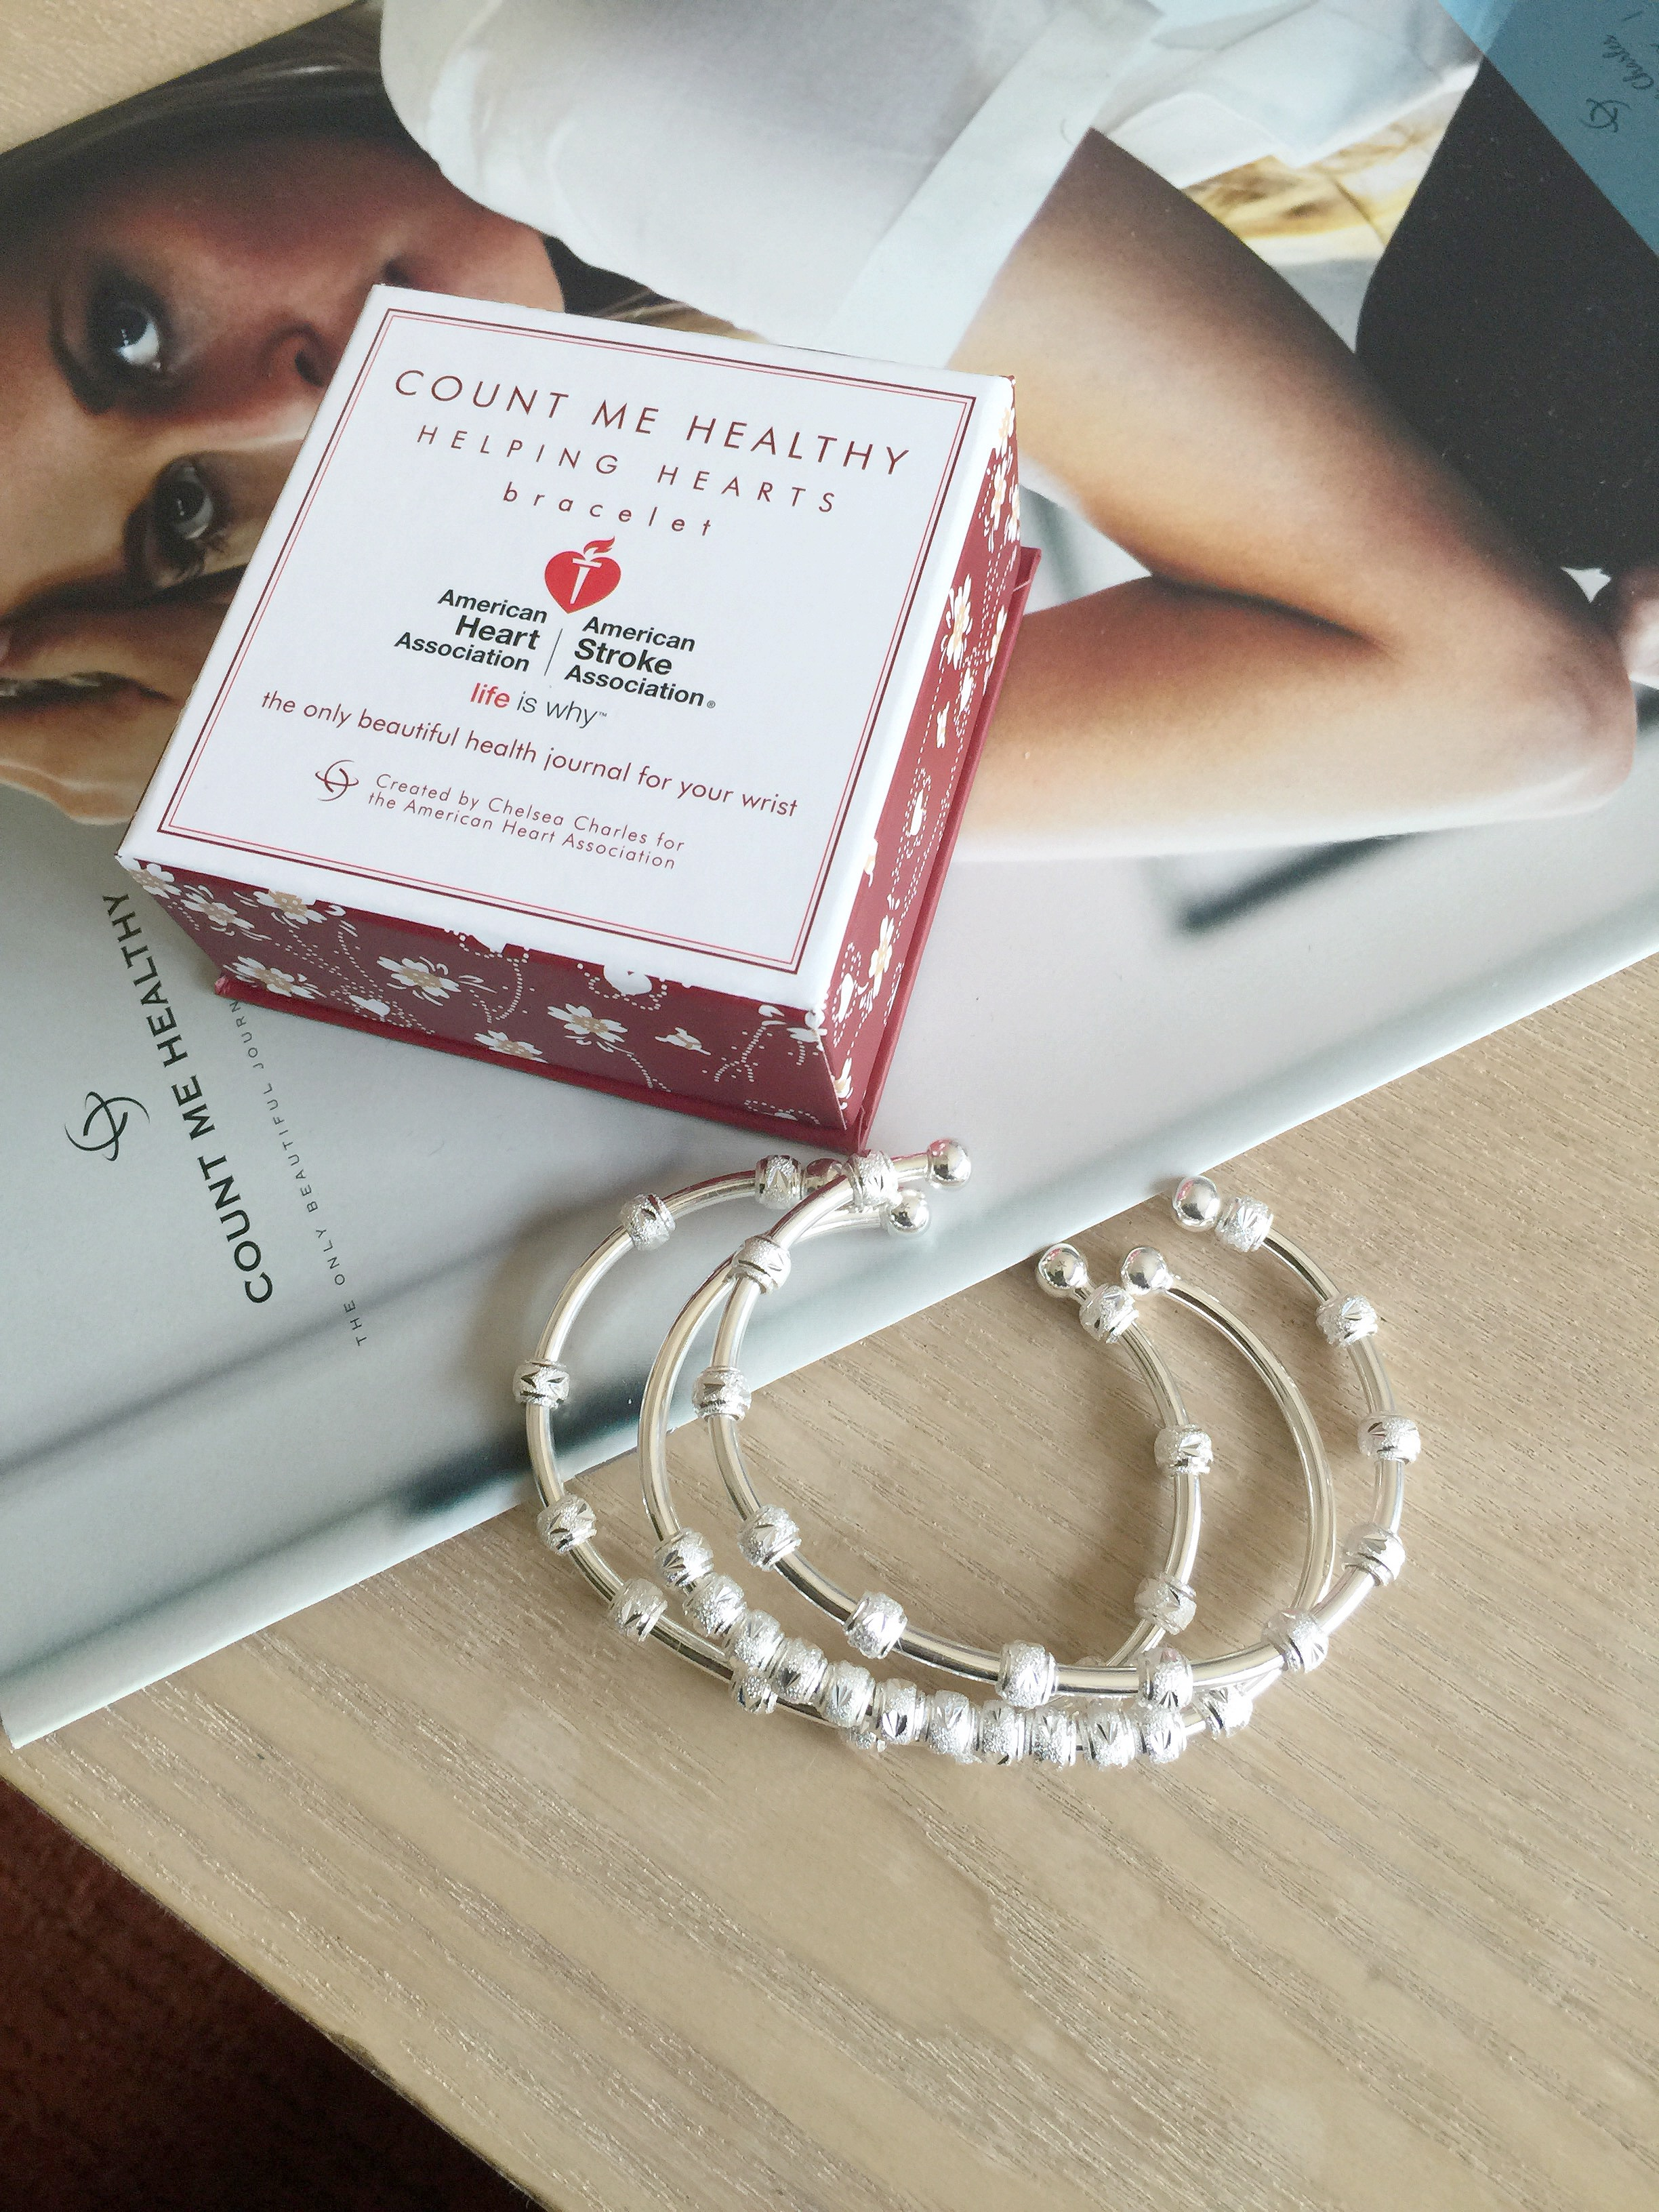 Count Me Healthy Bracelets for The American Heart Association